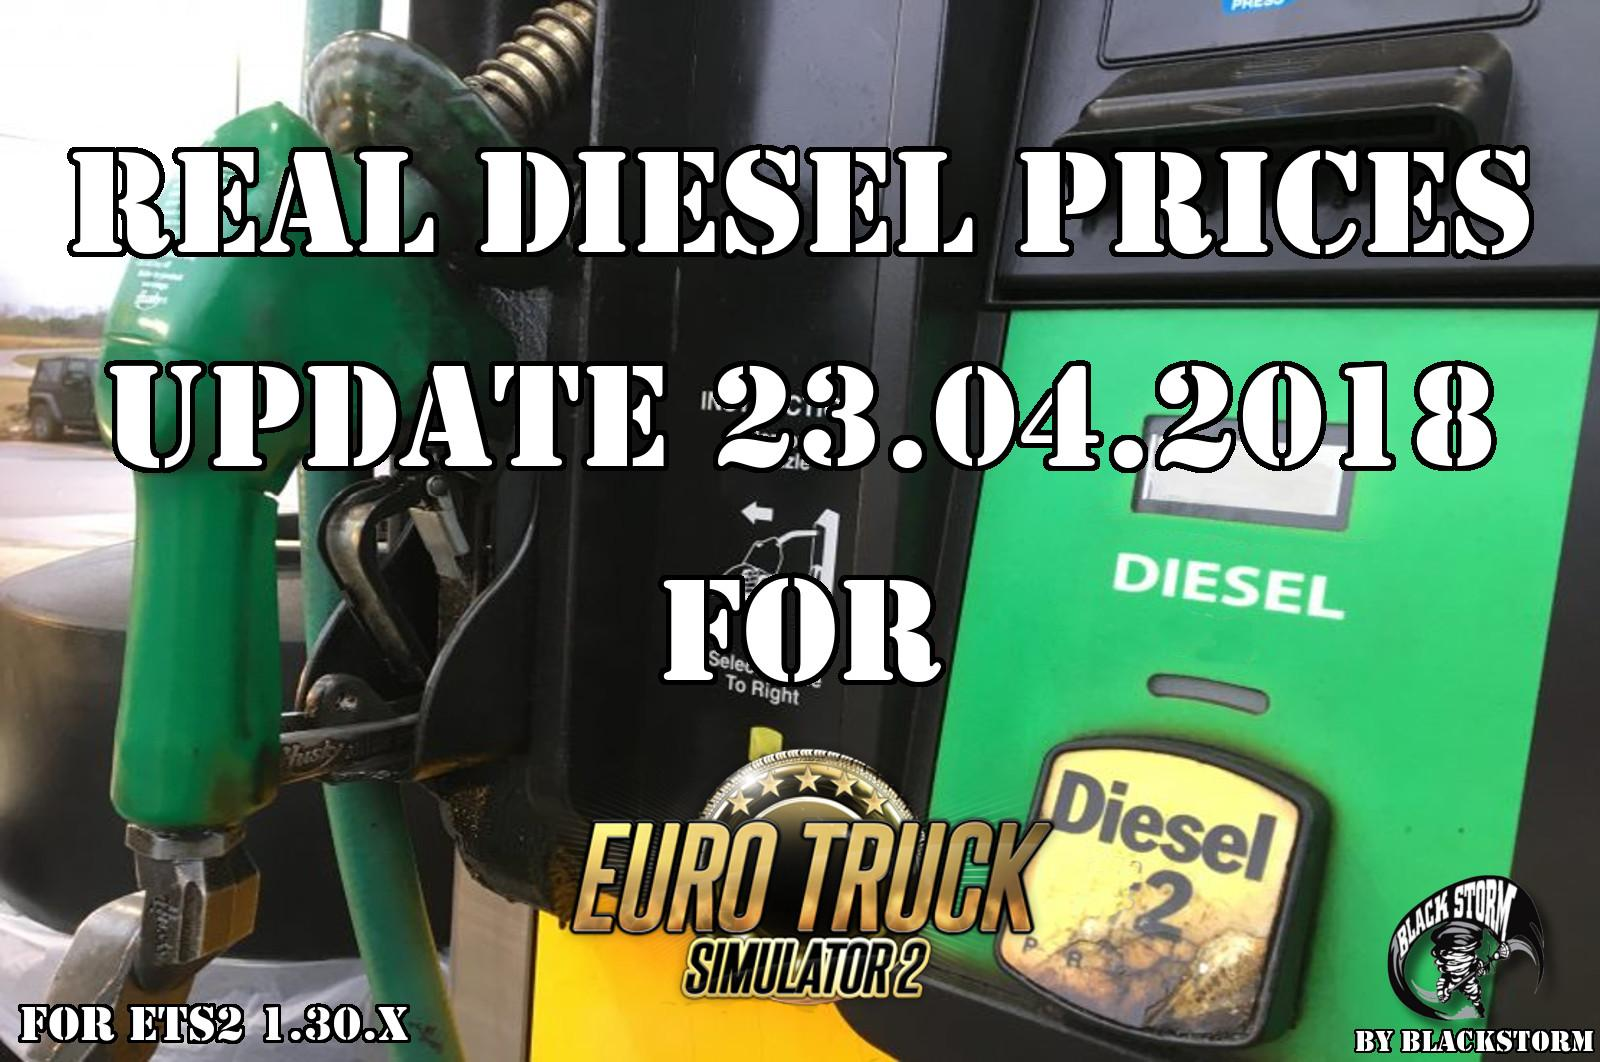 REAL DIESEL PRICES FOR ETS2 V.1.30.X (UPDATED 23/04/2018)